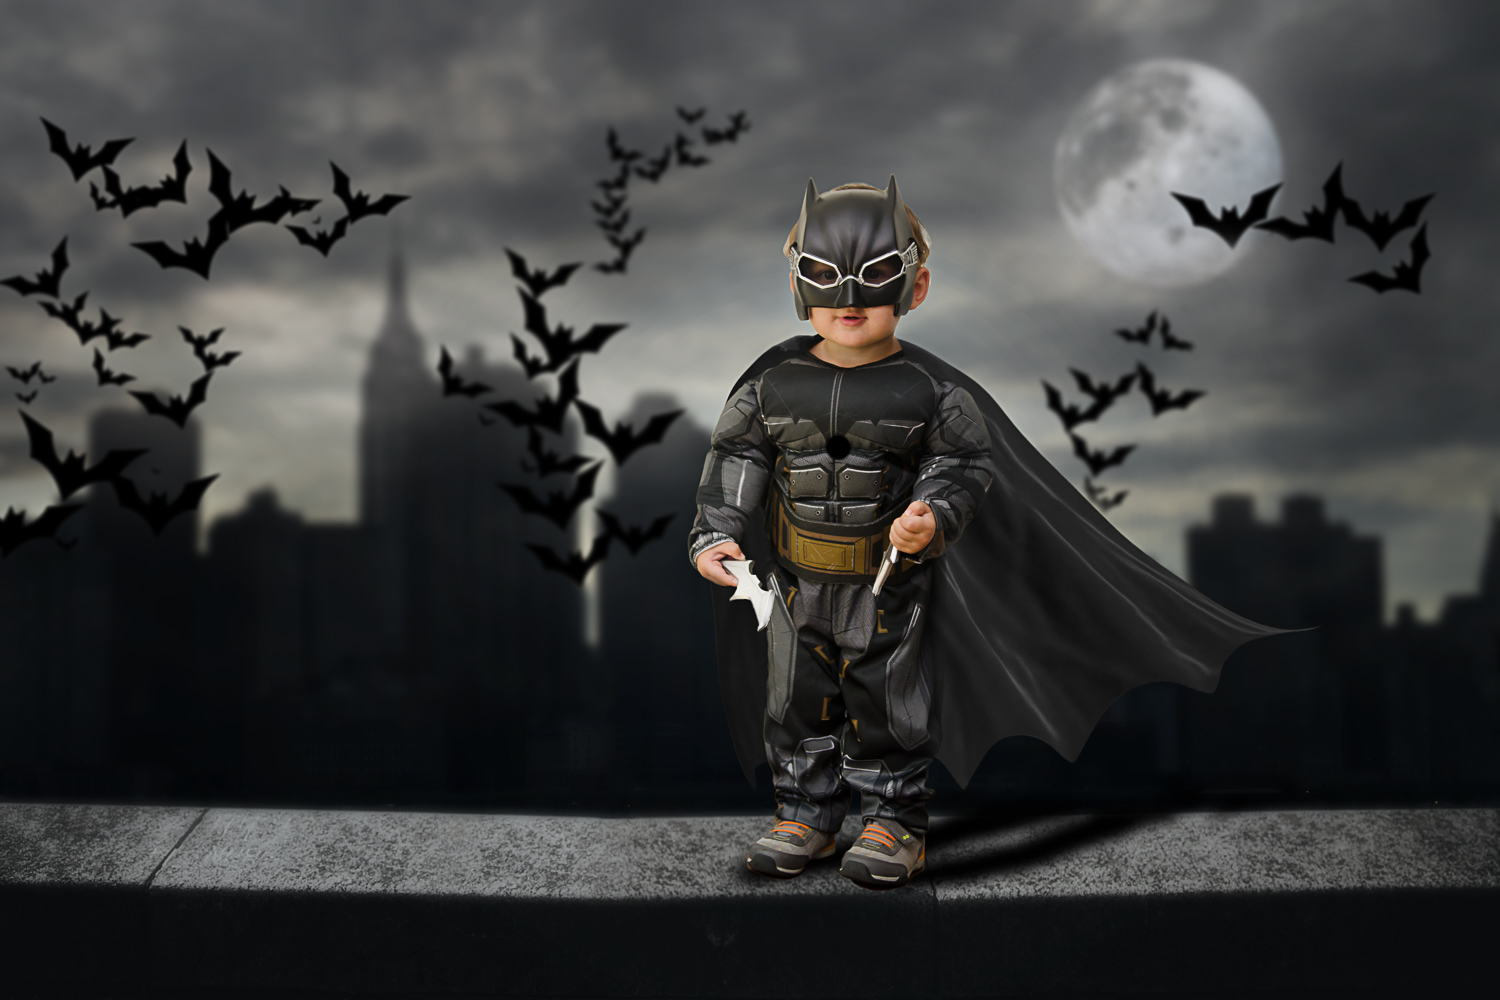 little boy batman over city skyline storybook composite